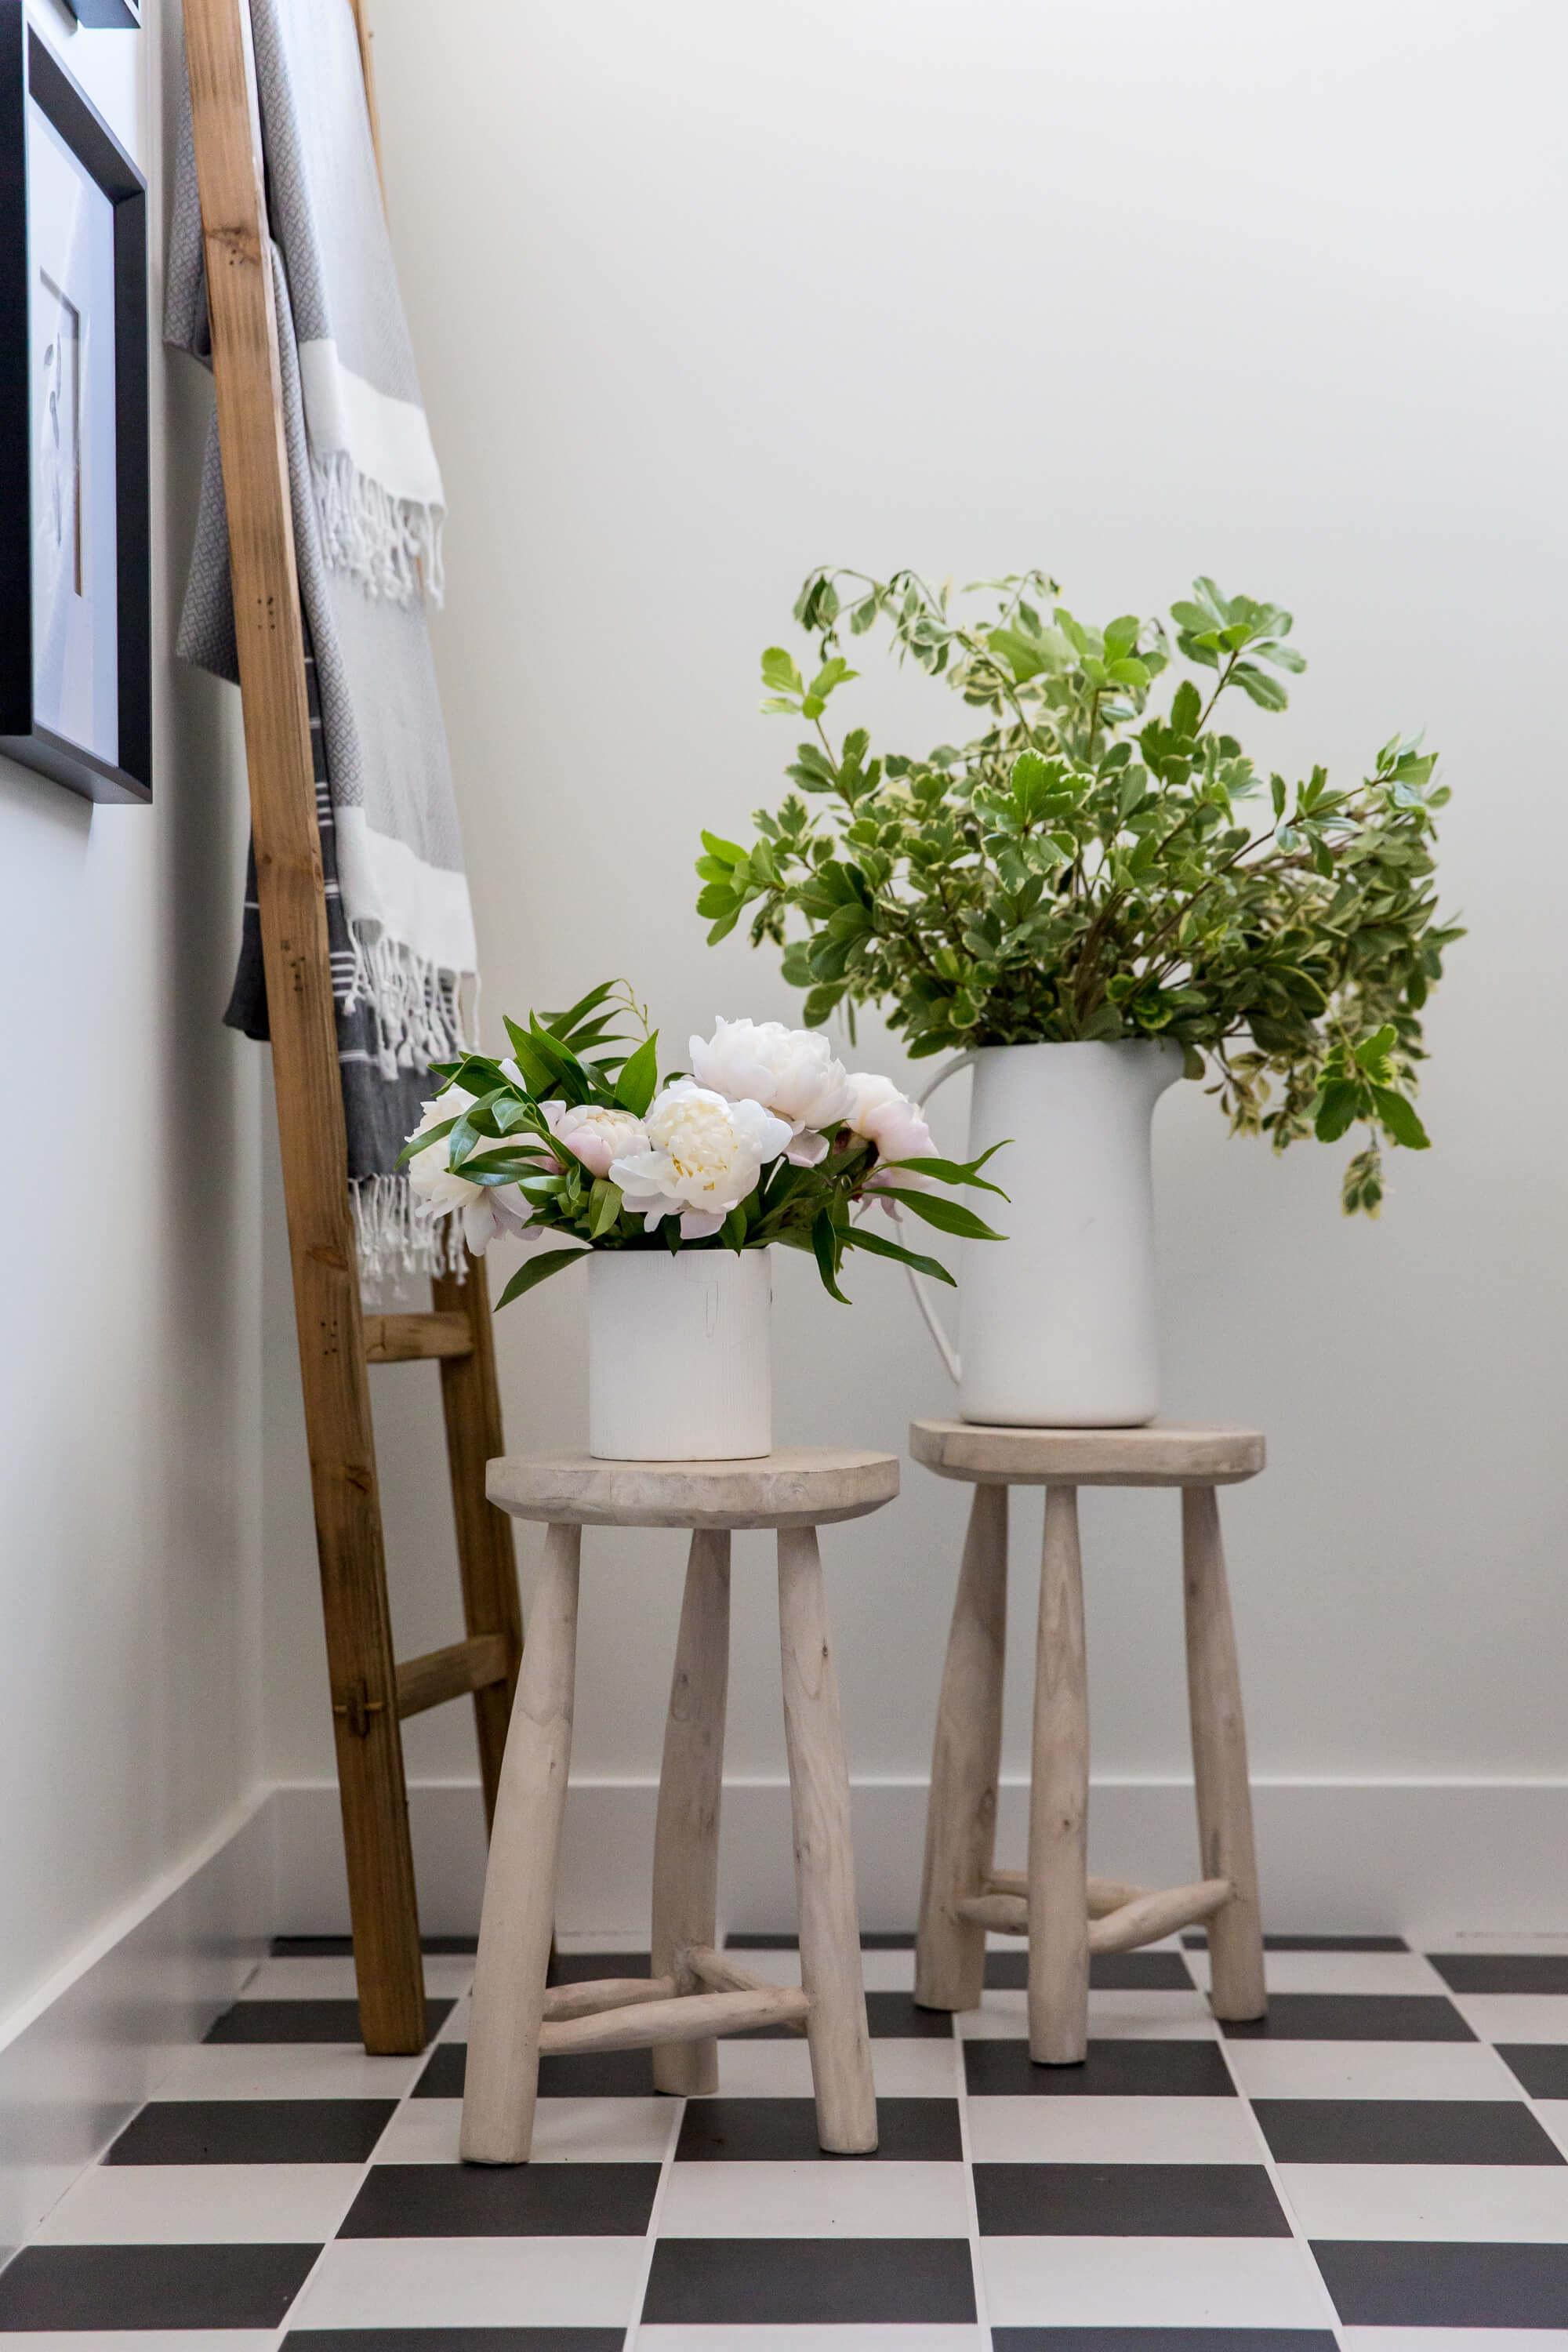 Greenery on Stools & White Interior Design